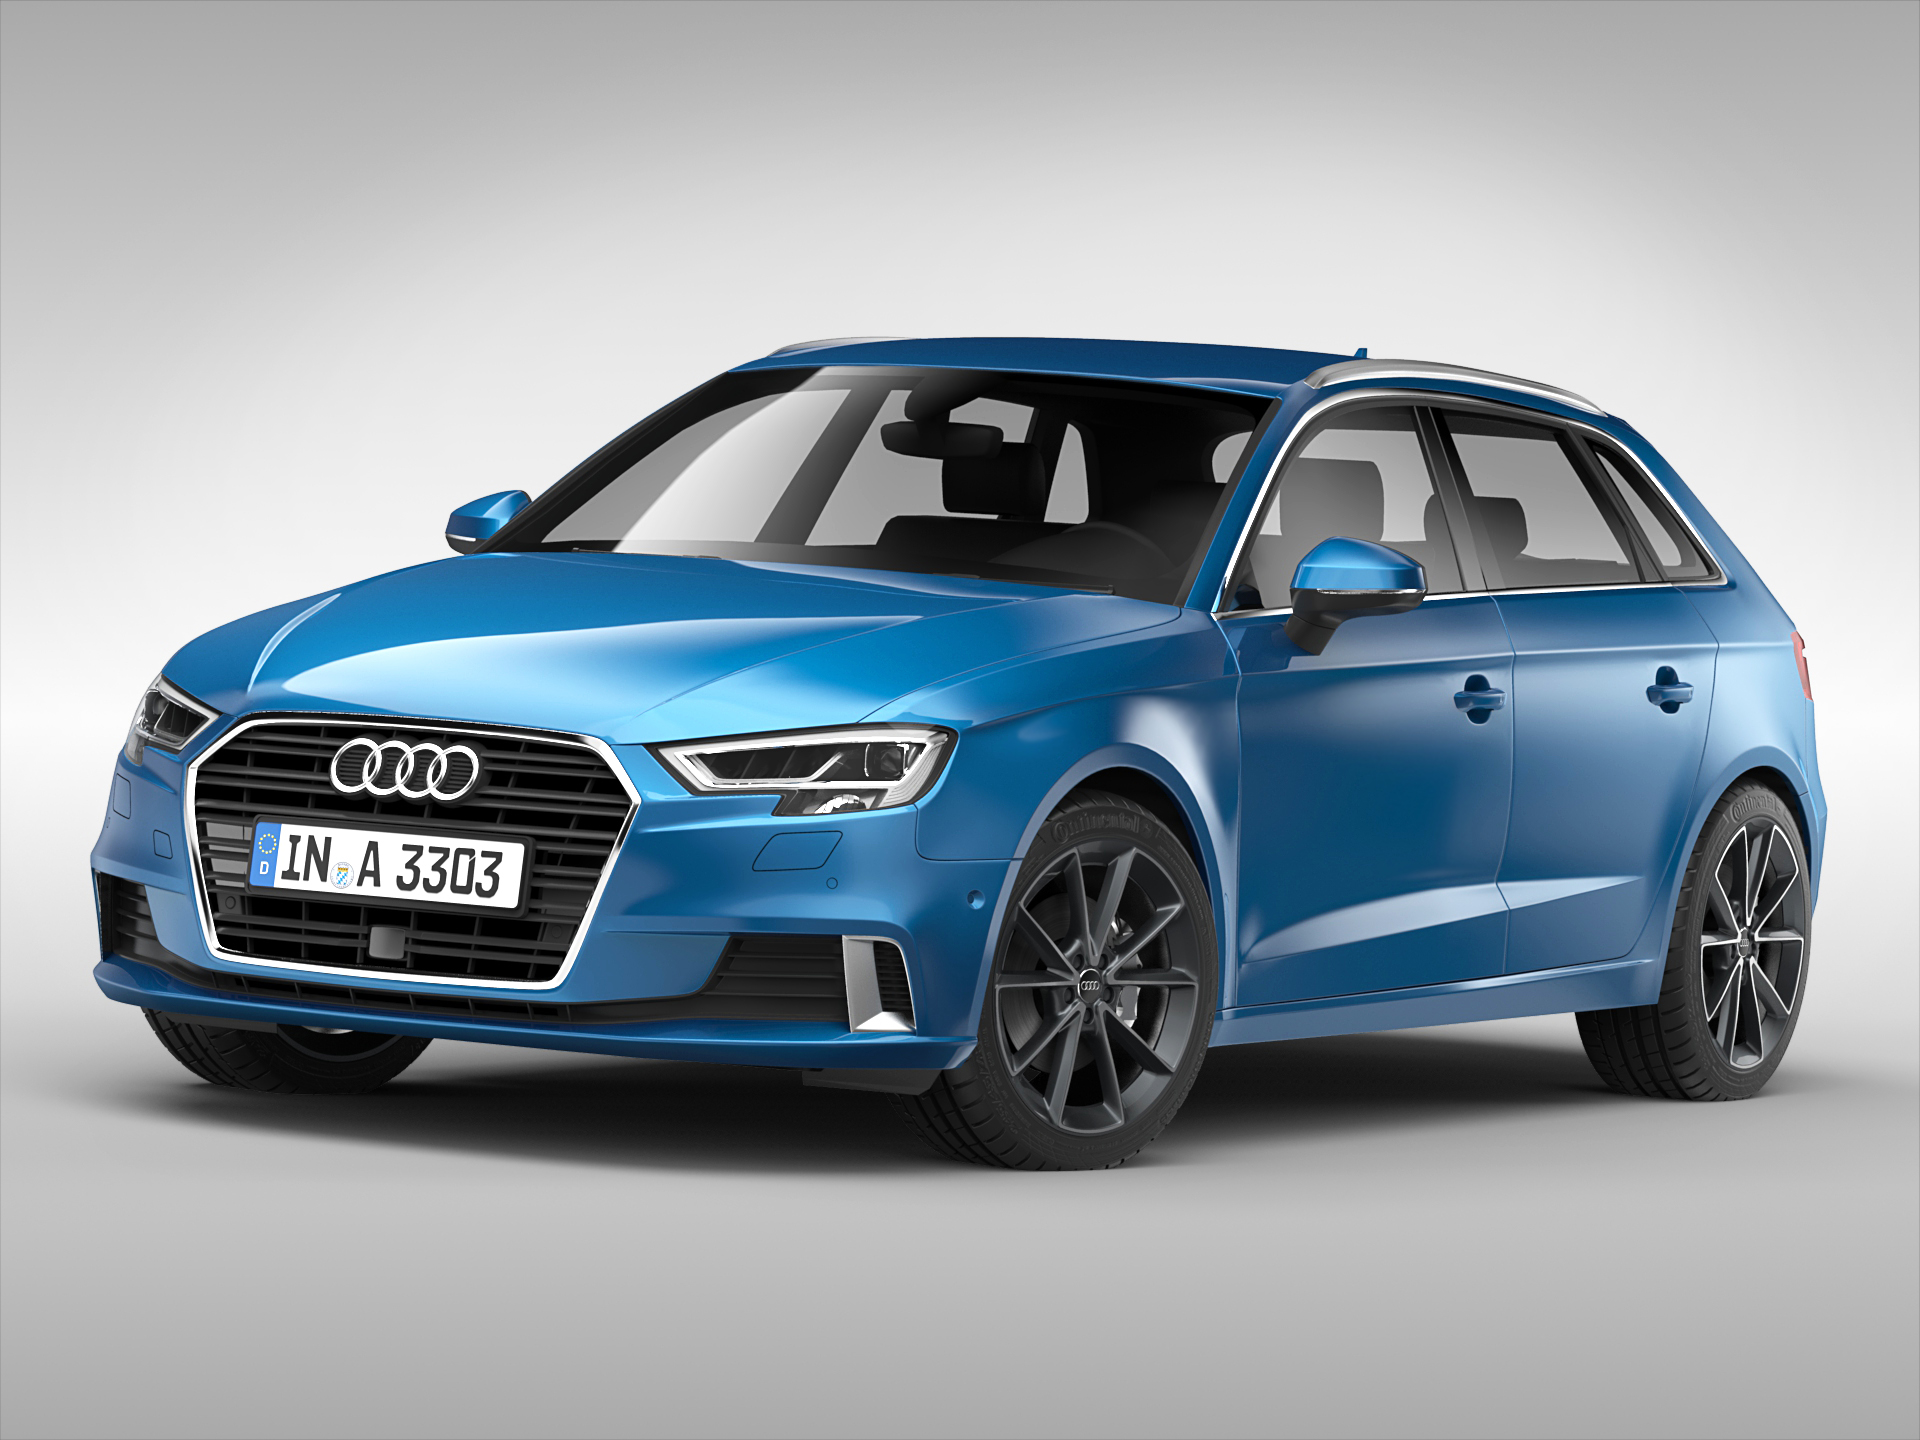 2017 audi a3 0 to 60 16